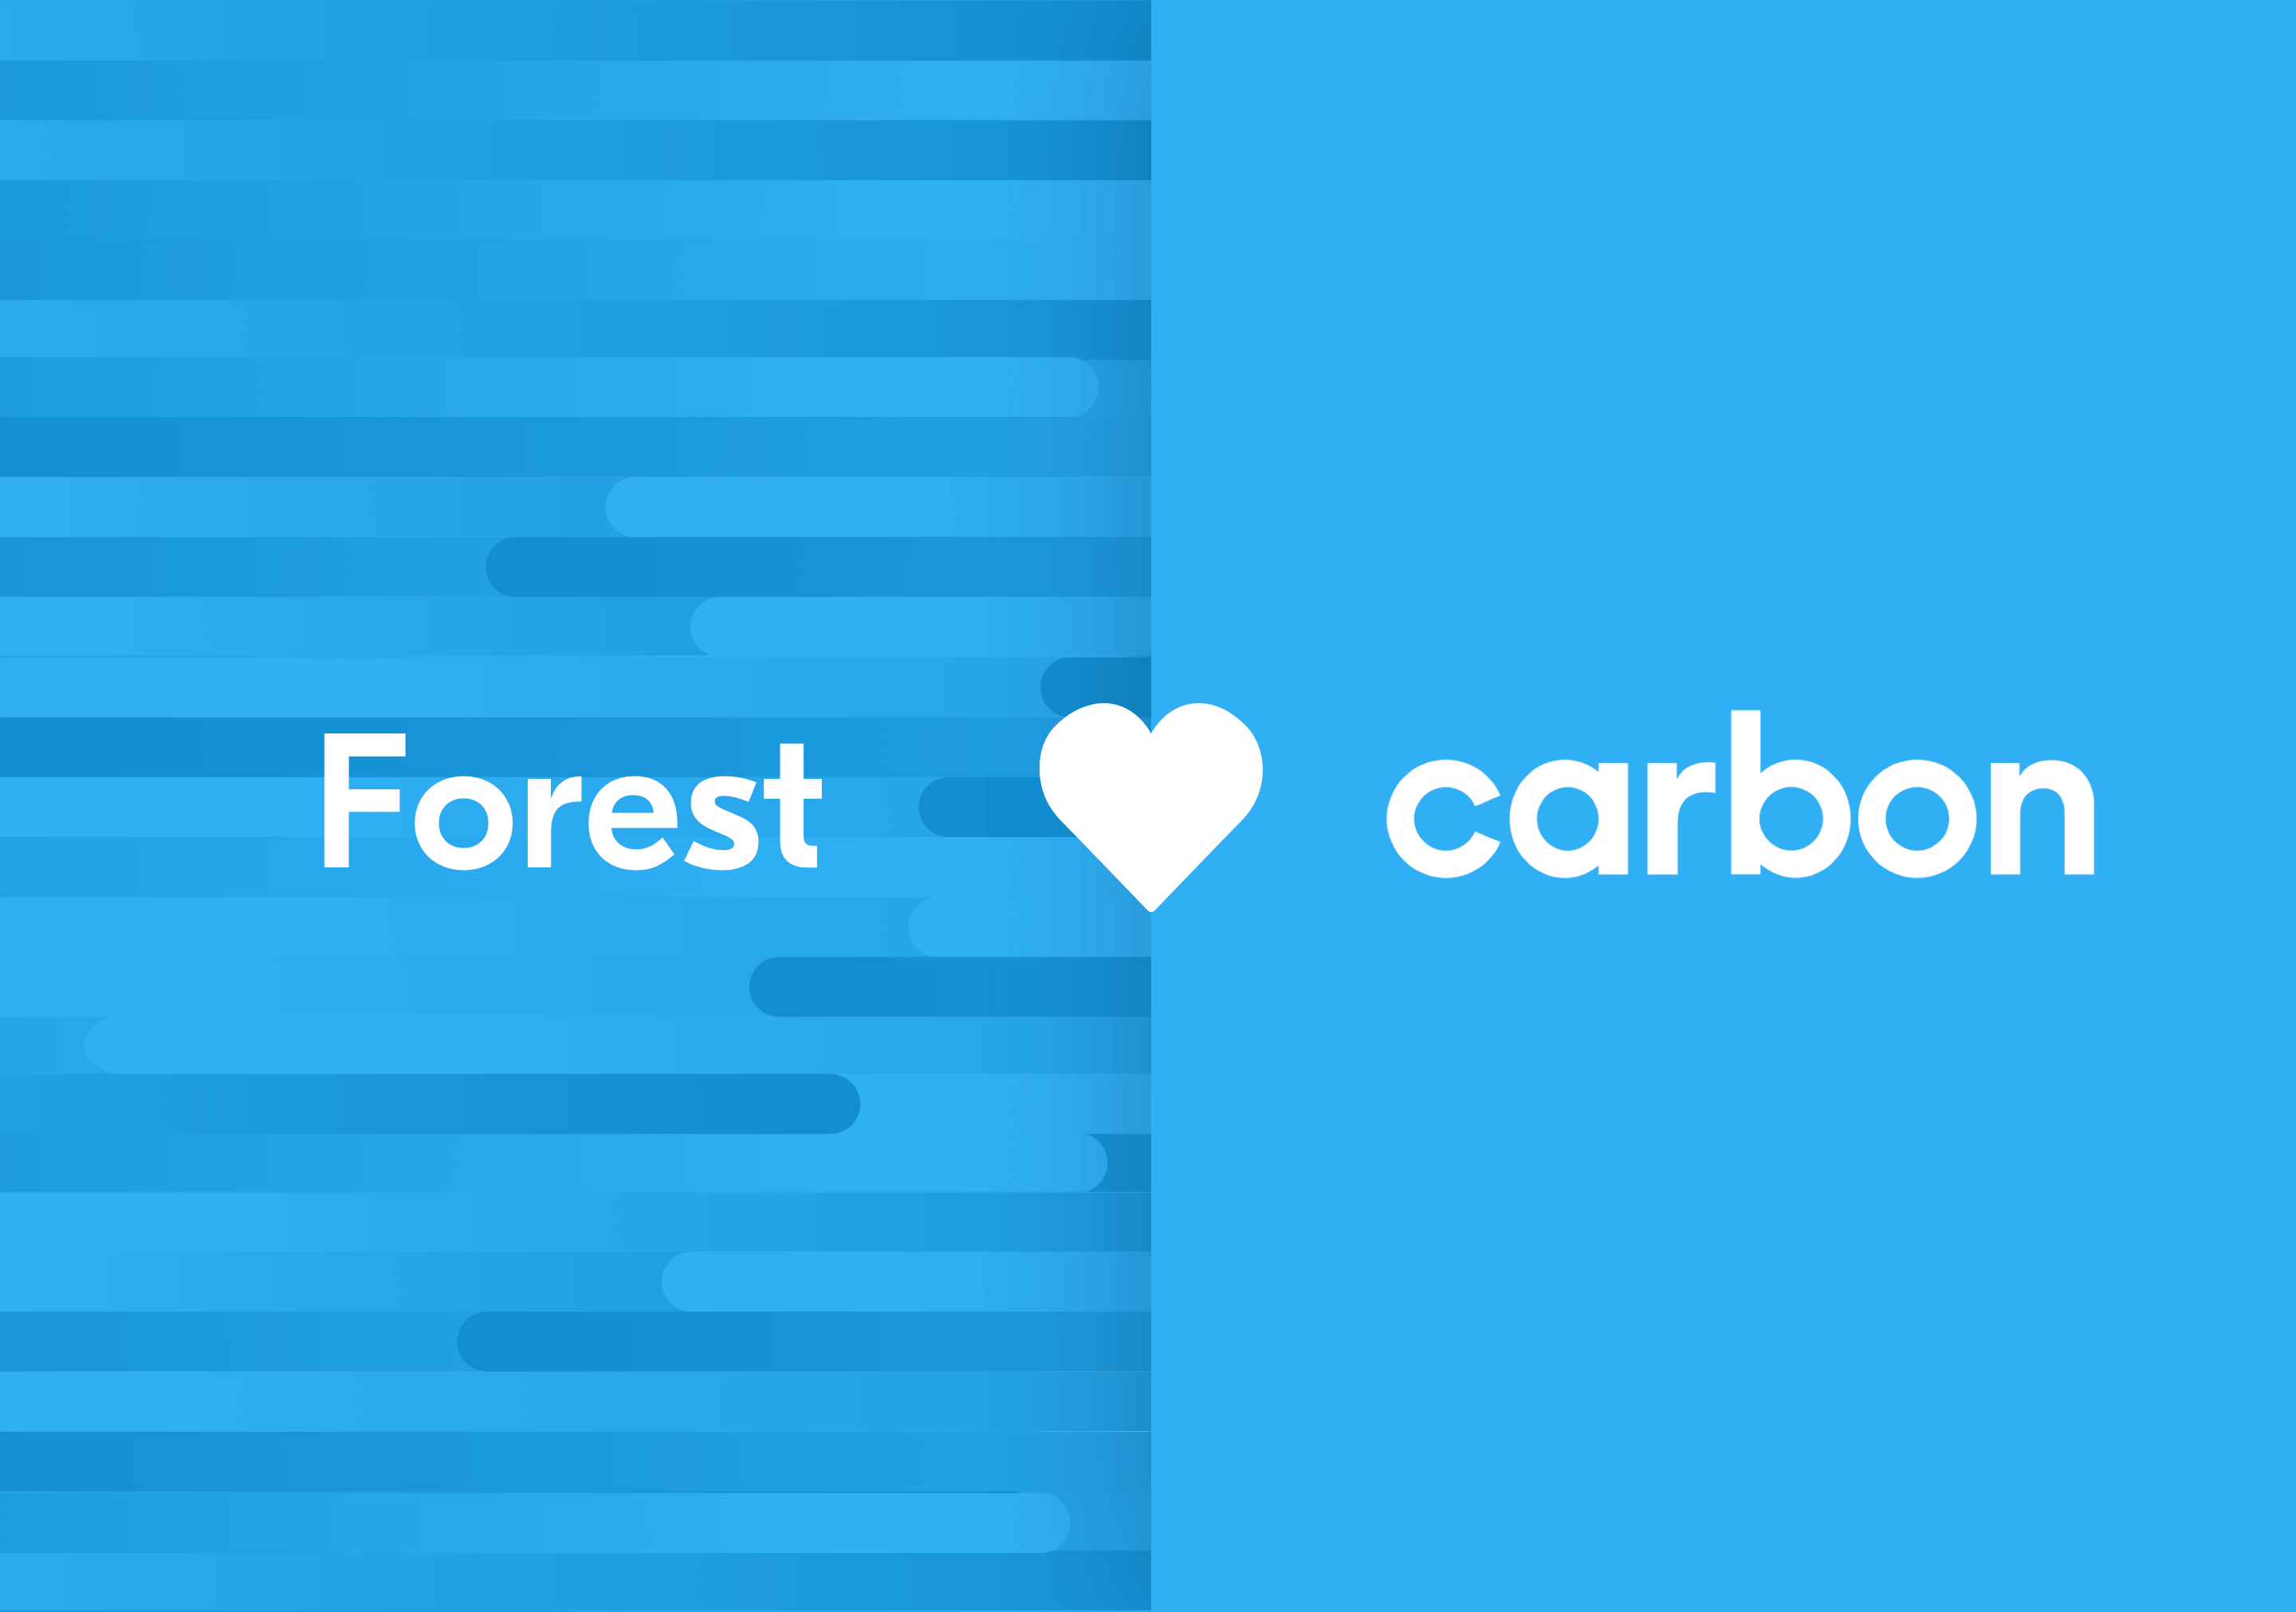 How Carbon Health is building the world's largest hospital thanks to Forest Admin